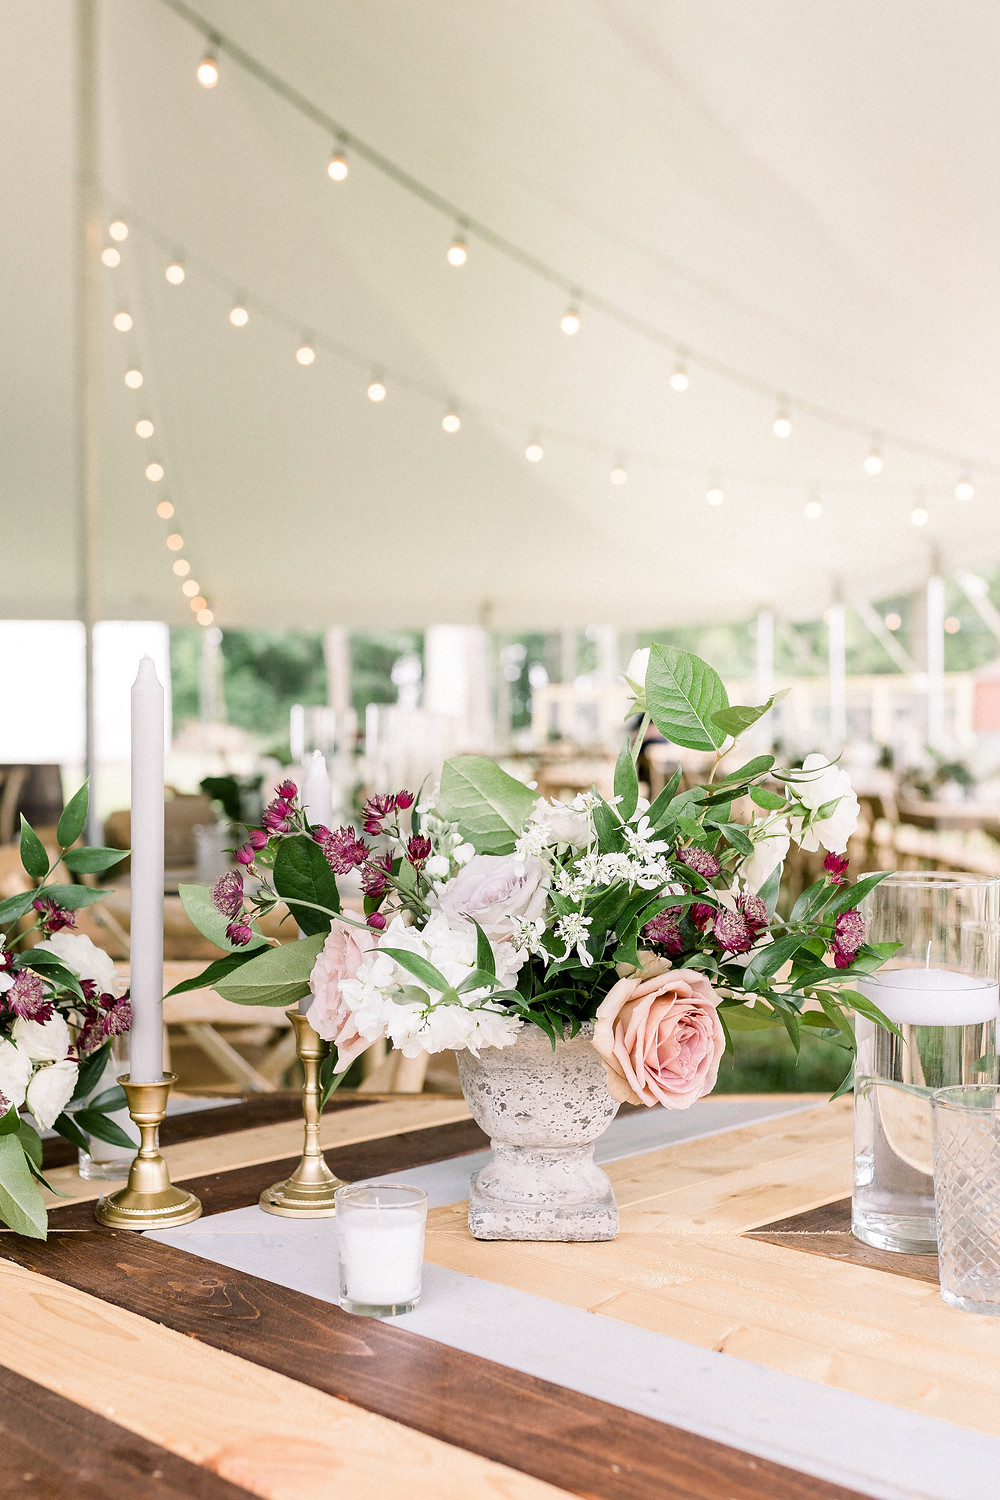 Hope and Jordan's Backyard Wedding with Alexi Lee Photography, Angela Marie Events, Root Floral Design, and Lovegood Wedding & Event Rentals